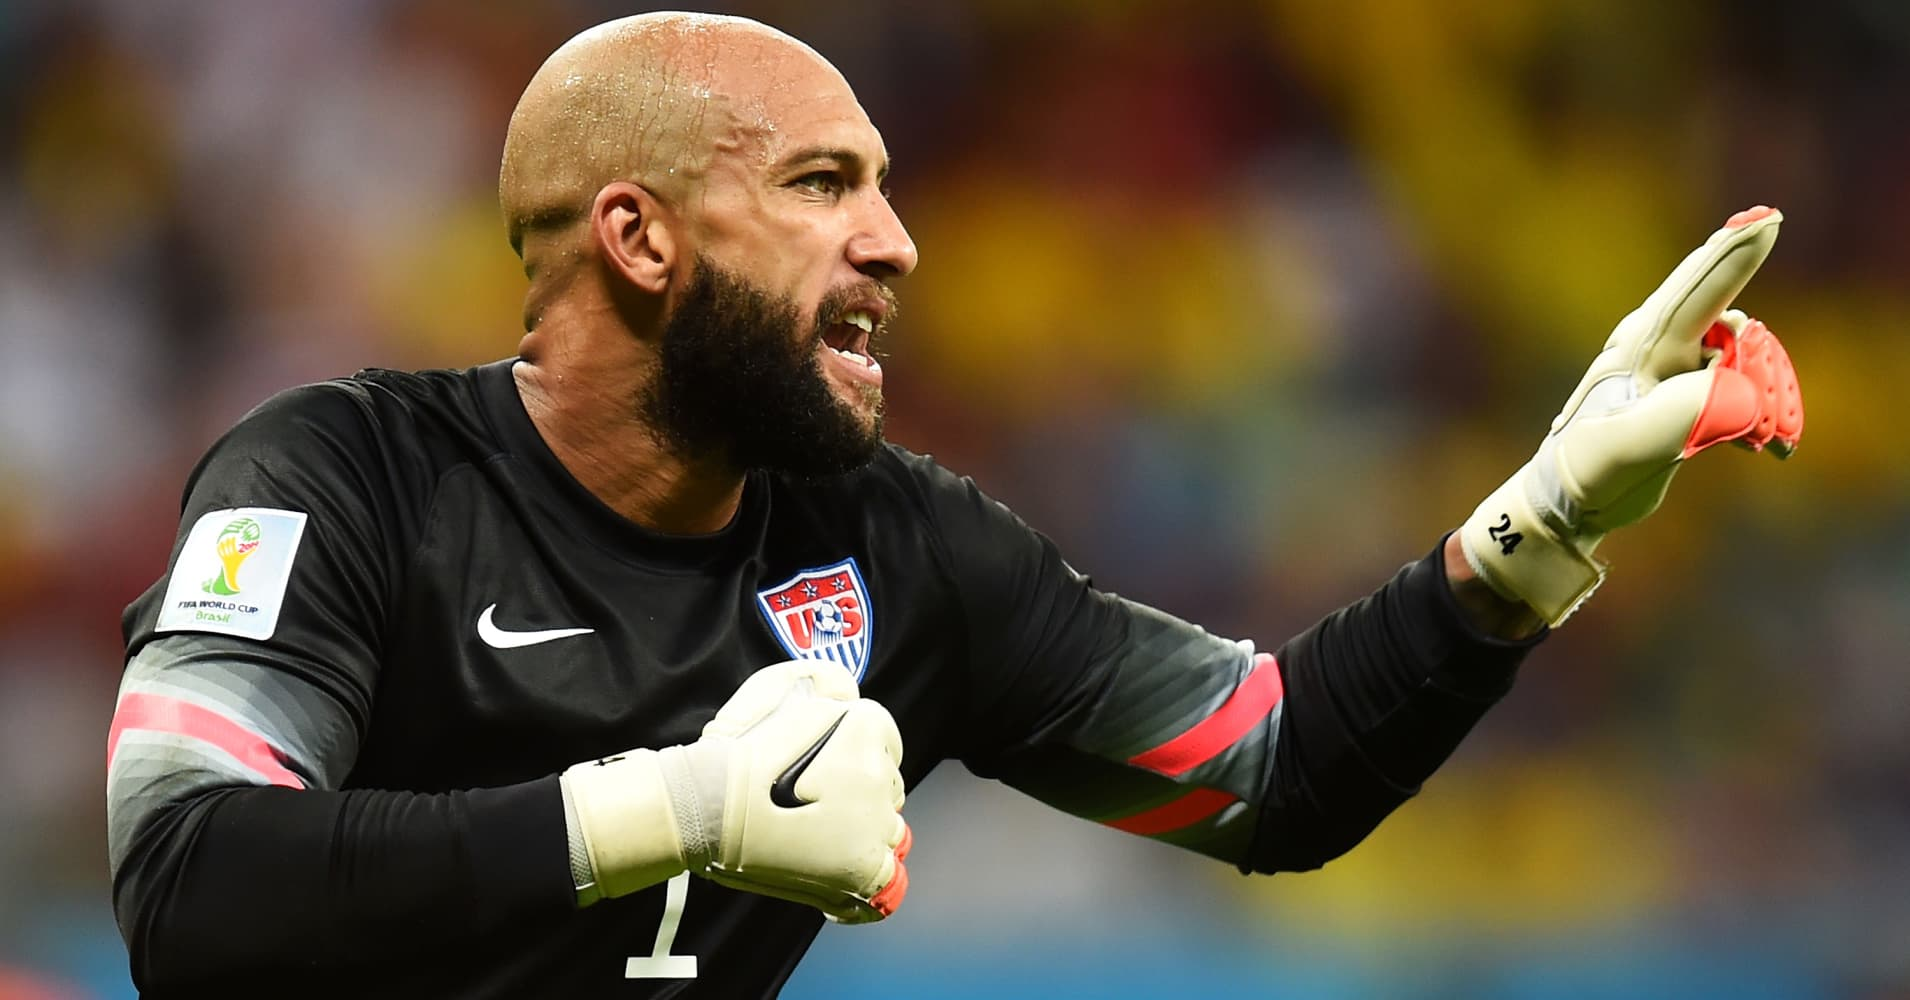 Goalkeeper Tim Howard is social media's new hero